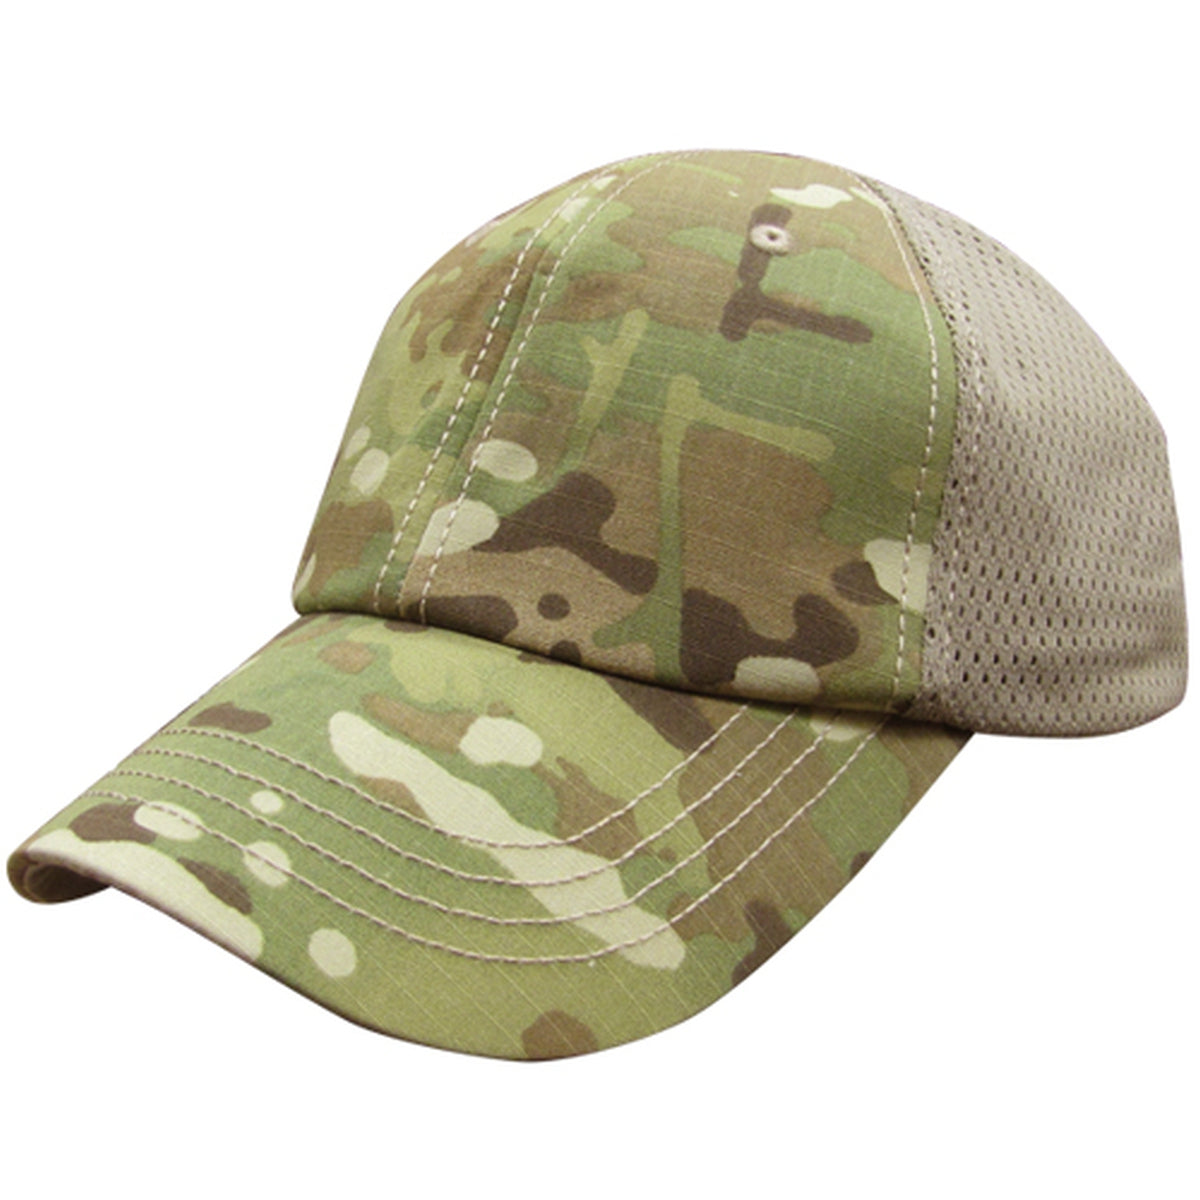 Condor TCT-008 Tactical Team Cap, Multicam - Olive Drab